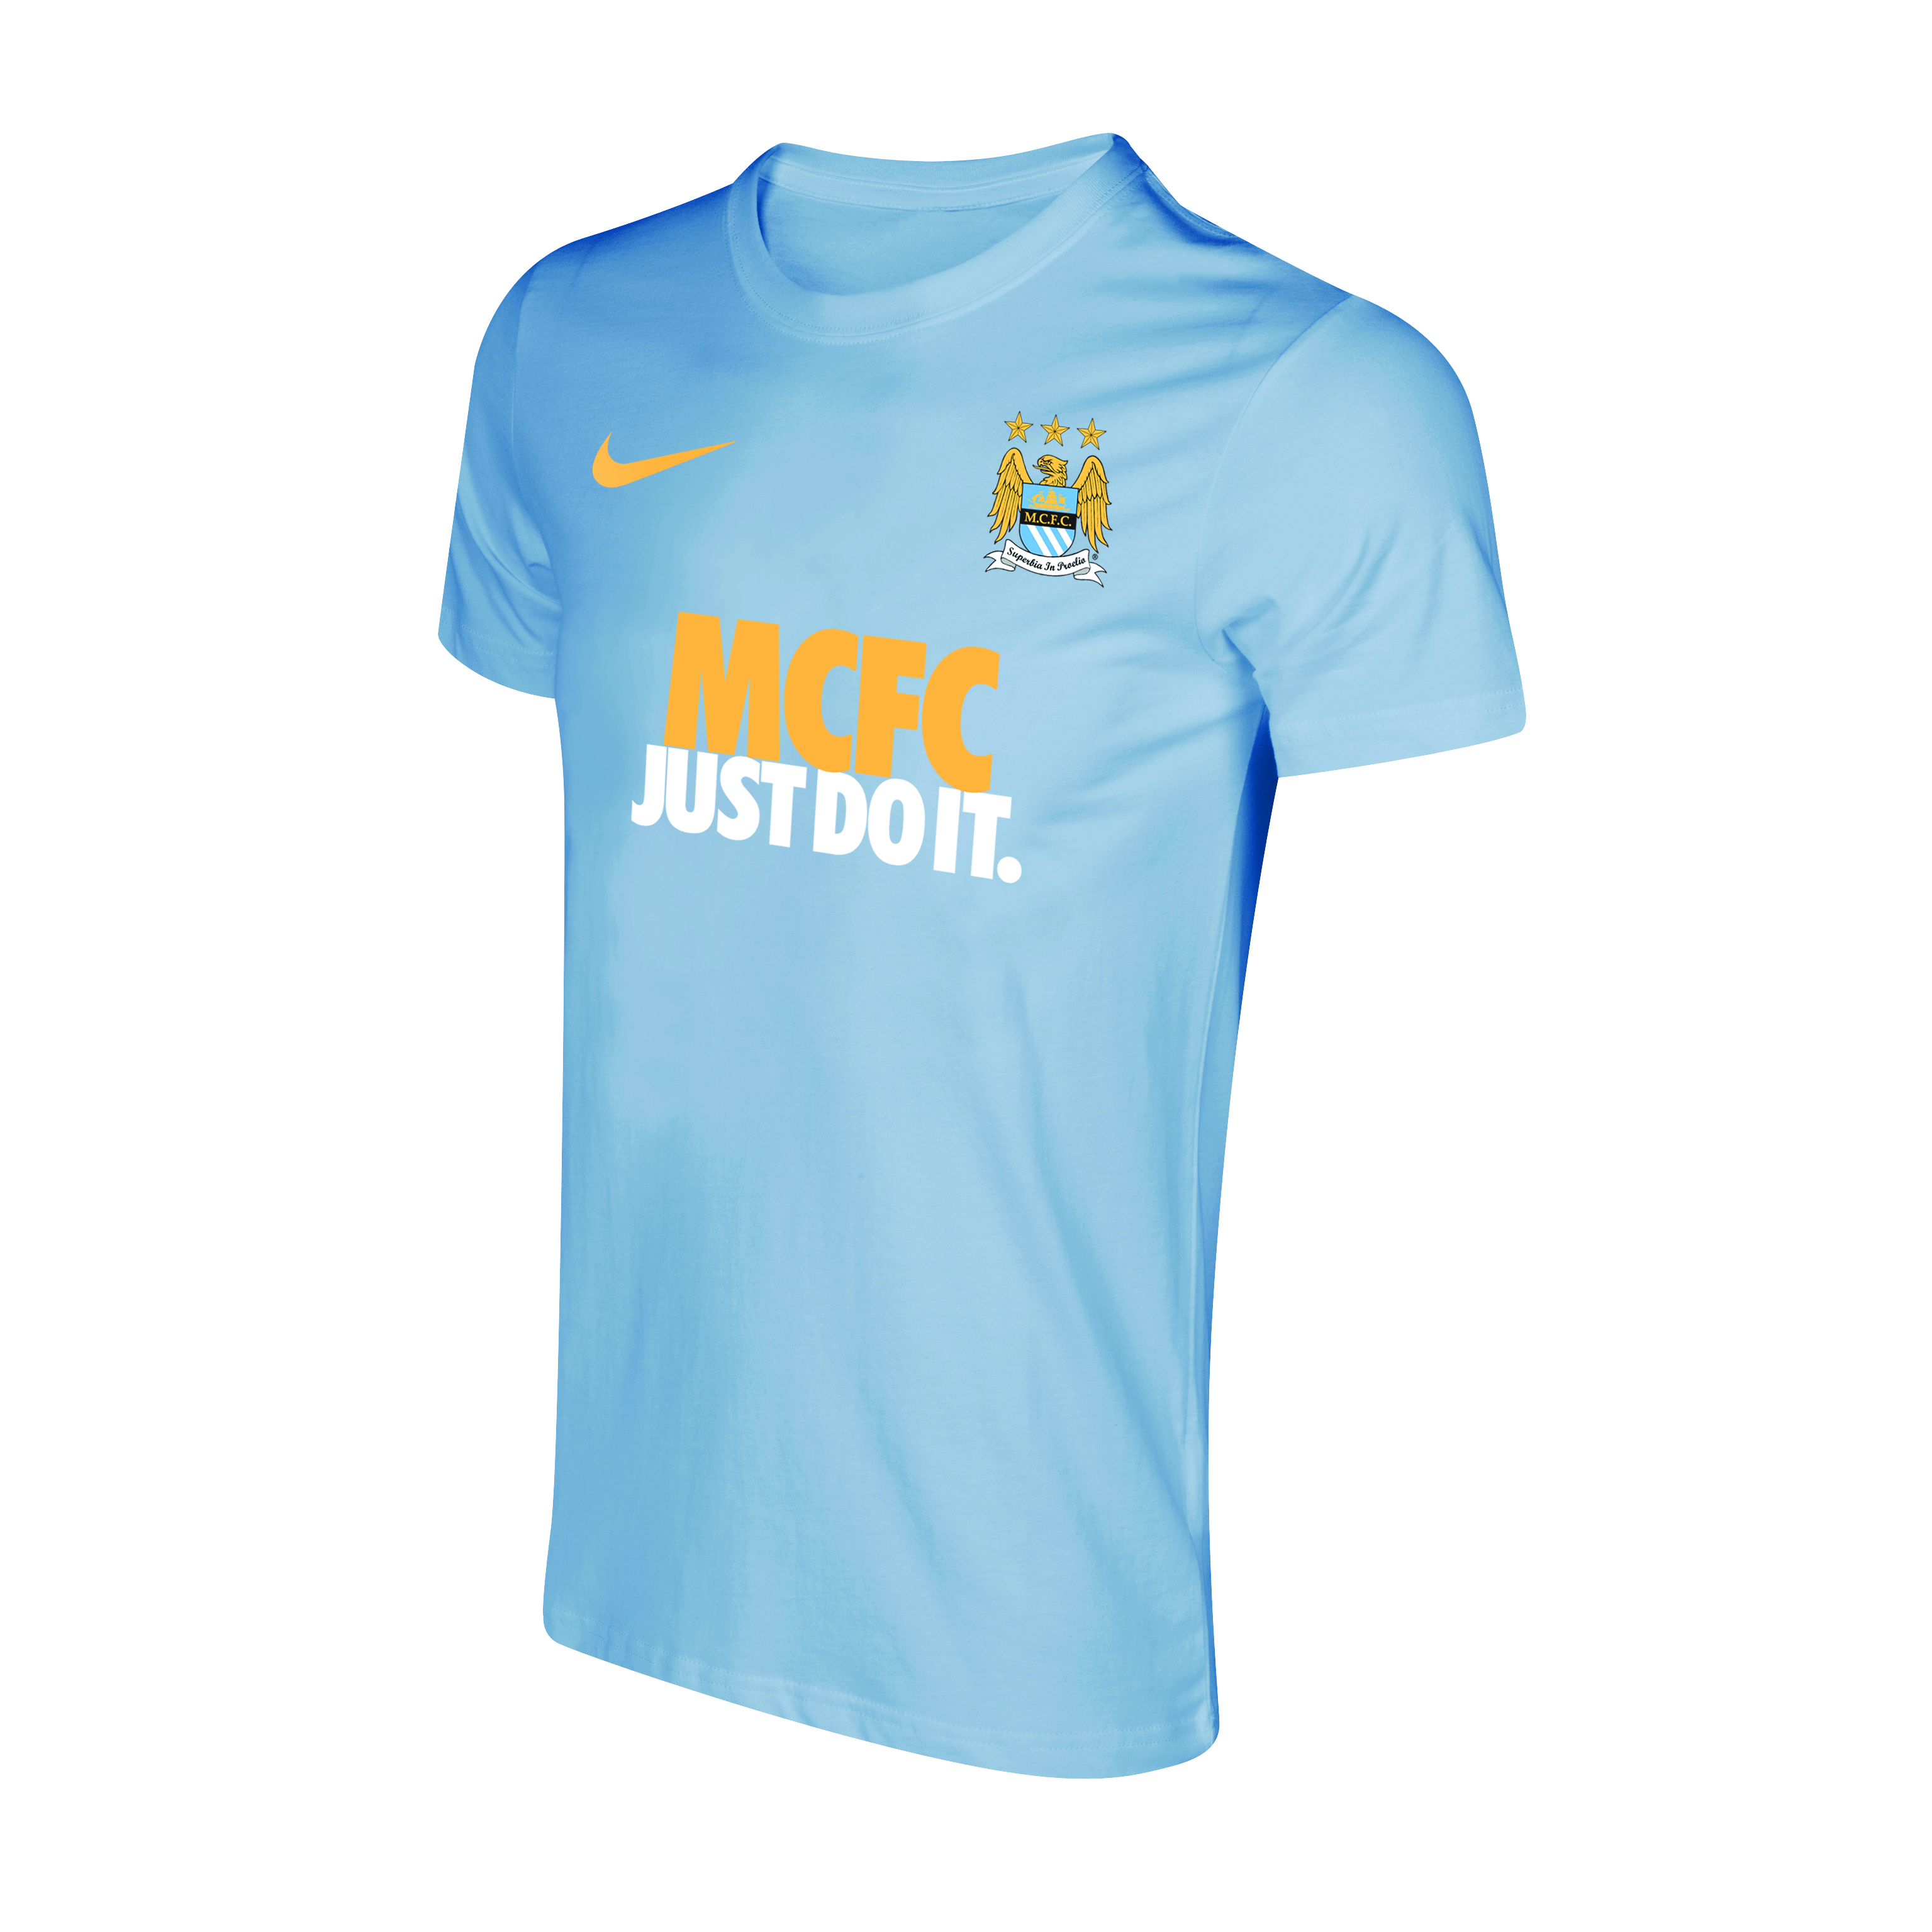 Manchester City Core Just Do It T-Shirt - Mens Blue